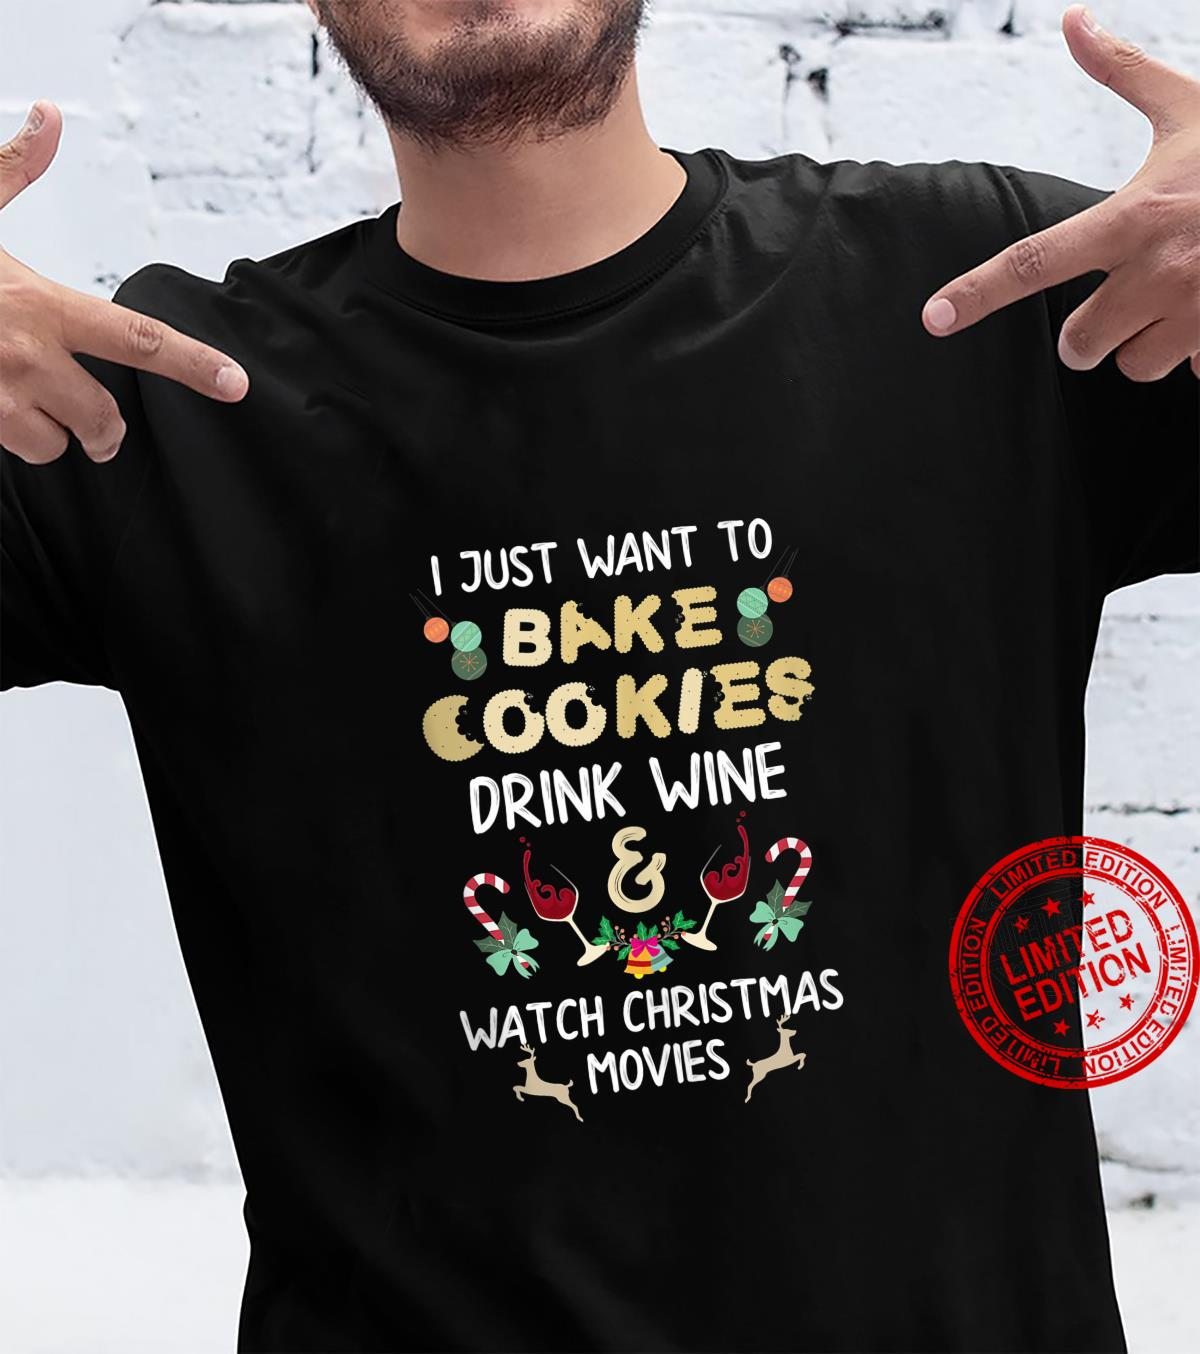 I Just Want to Bake Cookies and Watch Christmas Movies Shirt